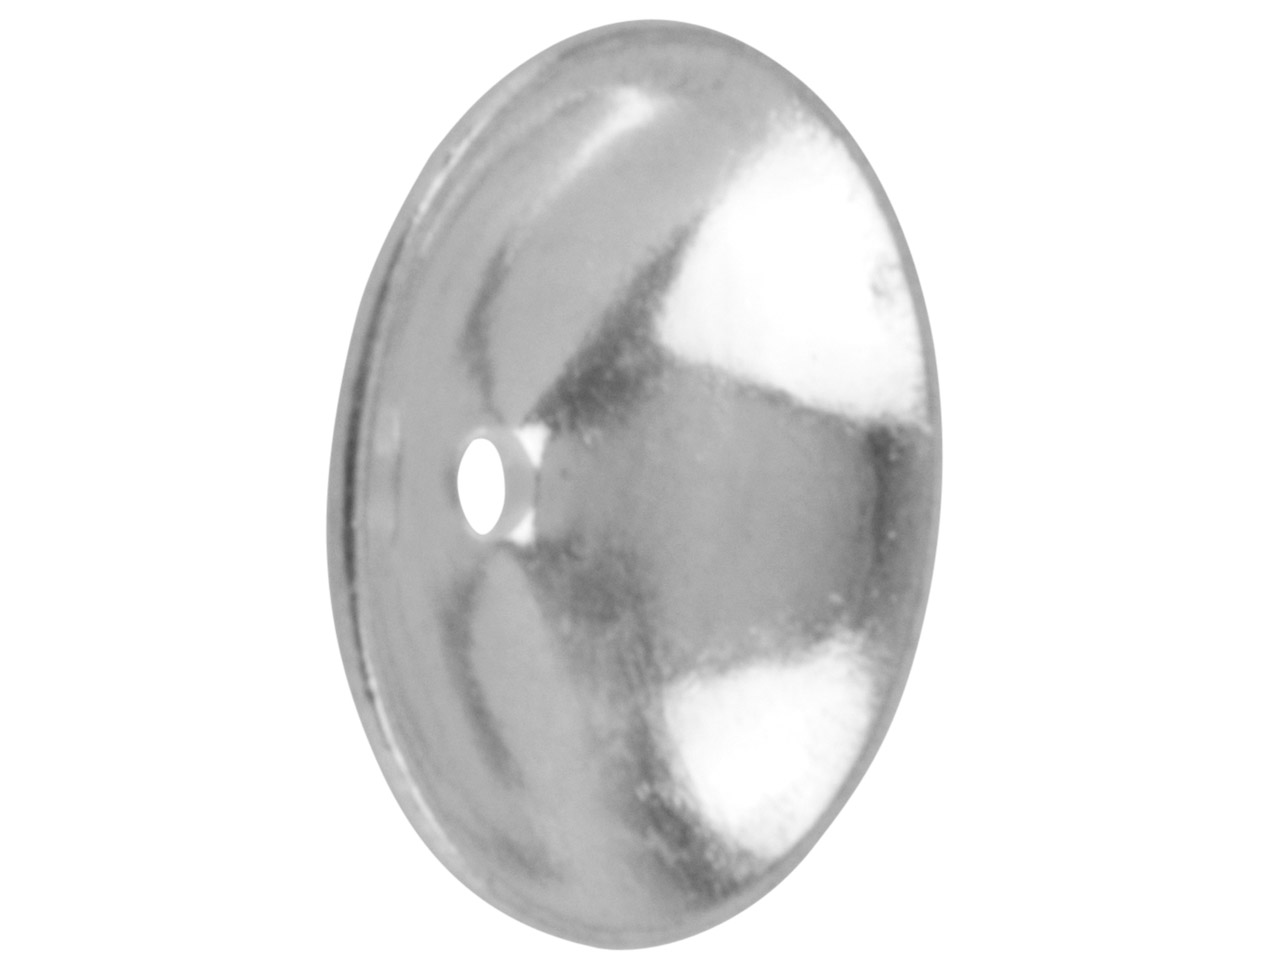 Silver Plated Plain Bead Cap 7mm   Pack of 25